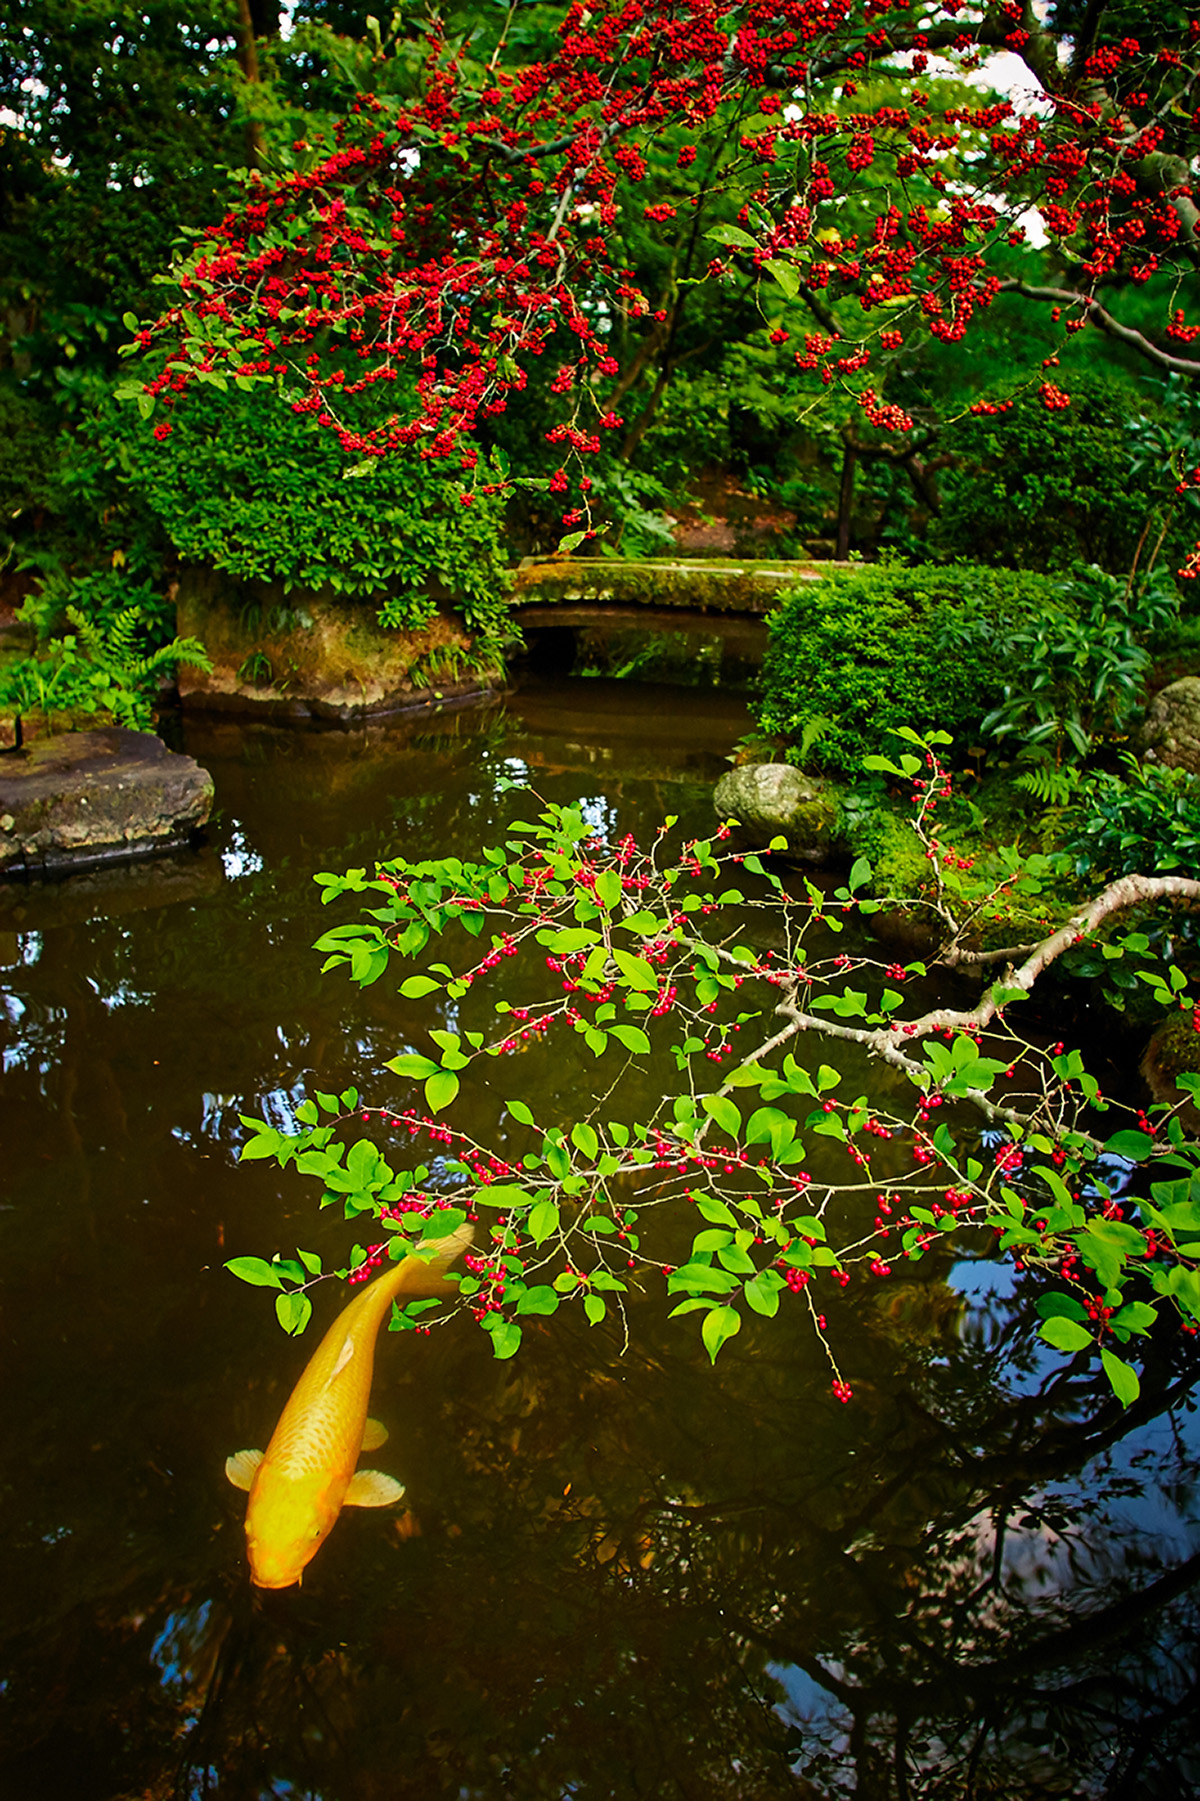 Koi and Pond, Kyoto, Japan